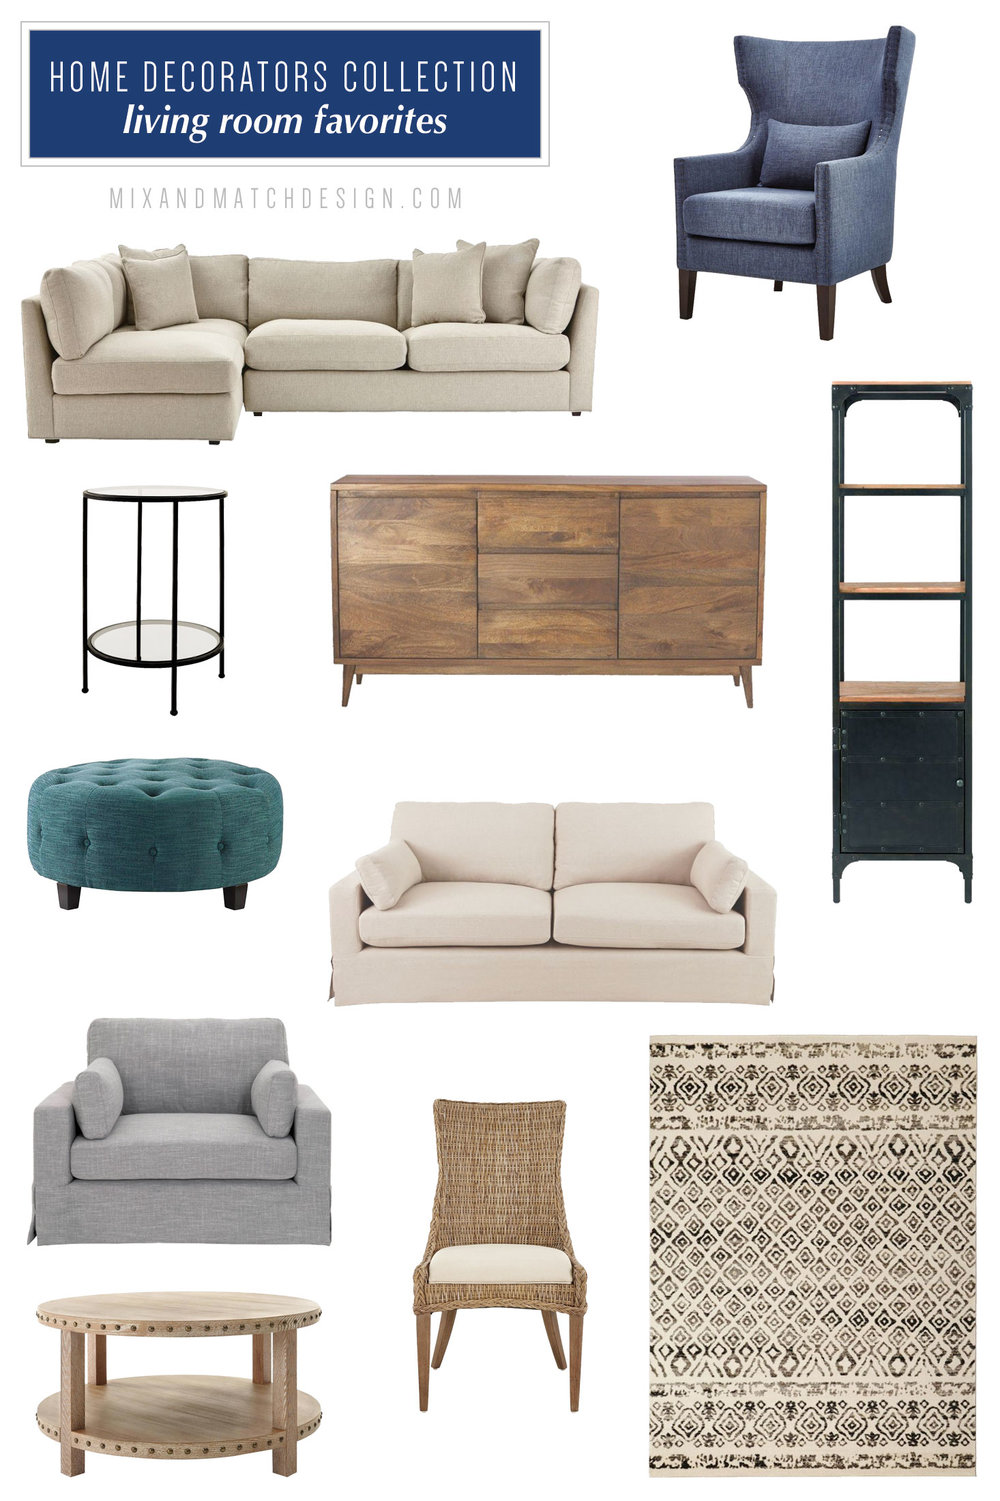 Did you know that the Home Depot carries furniture? They've got their own brand - Home Decorators Collection - and I've rounded up my favorites for your living room and bedroom from that collection that fall into the modern farmhouse style. Grab the sources and read more on the blog!